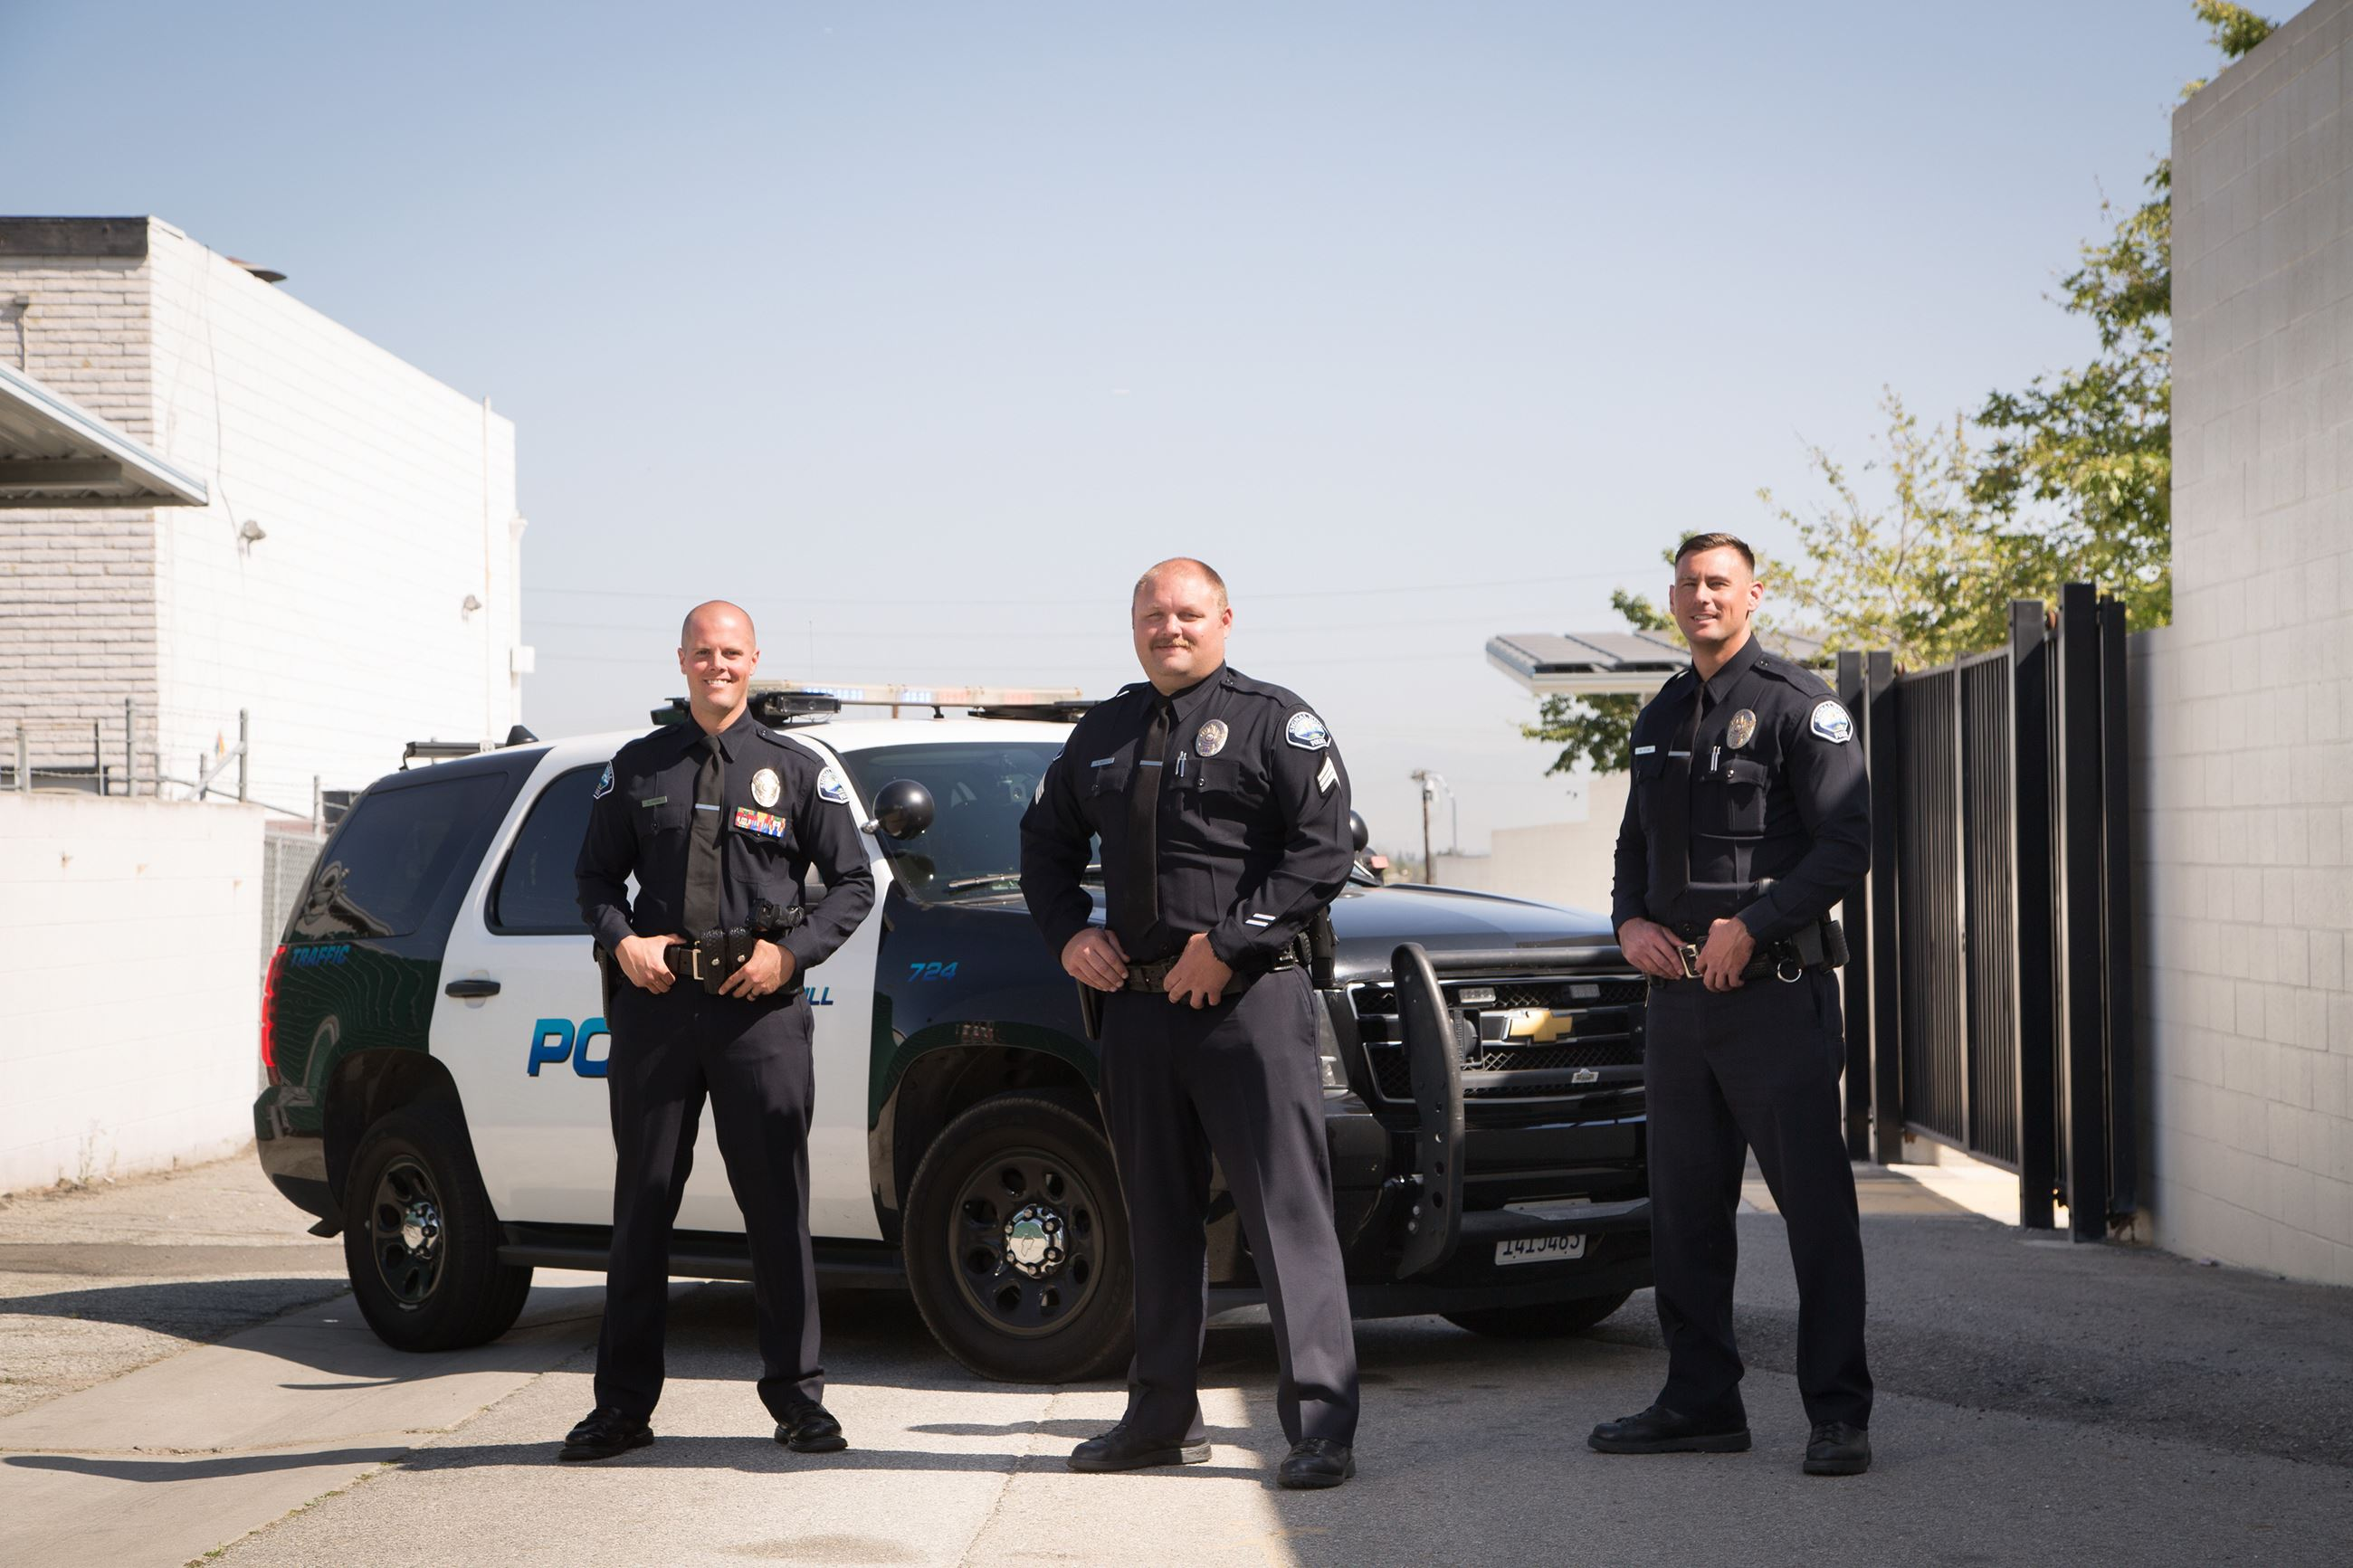 Three Signal Hill PD Traffic Officers standing by their patrol car